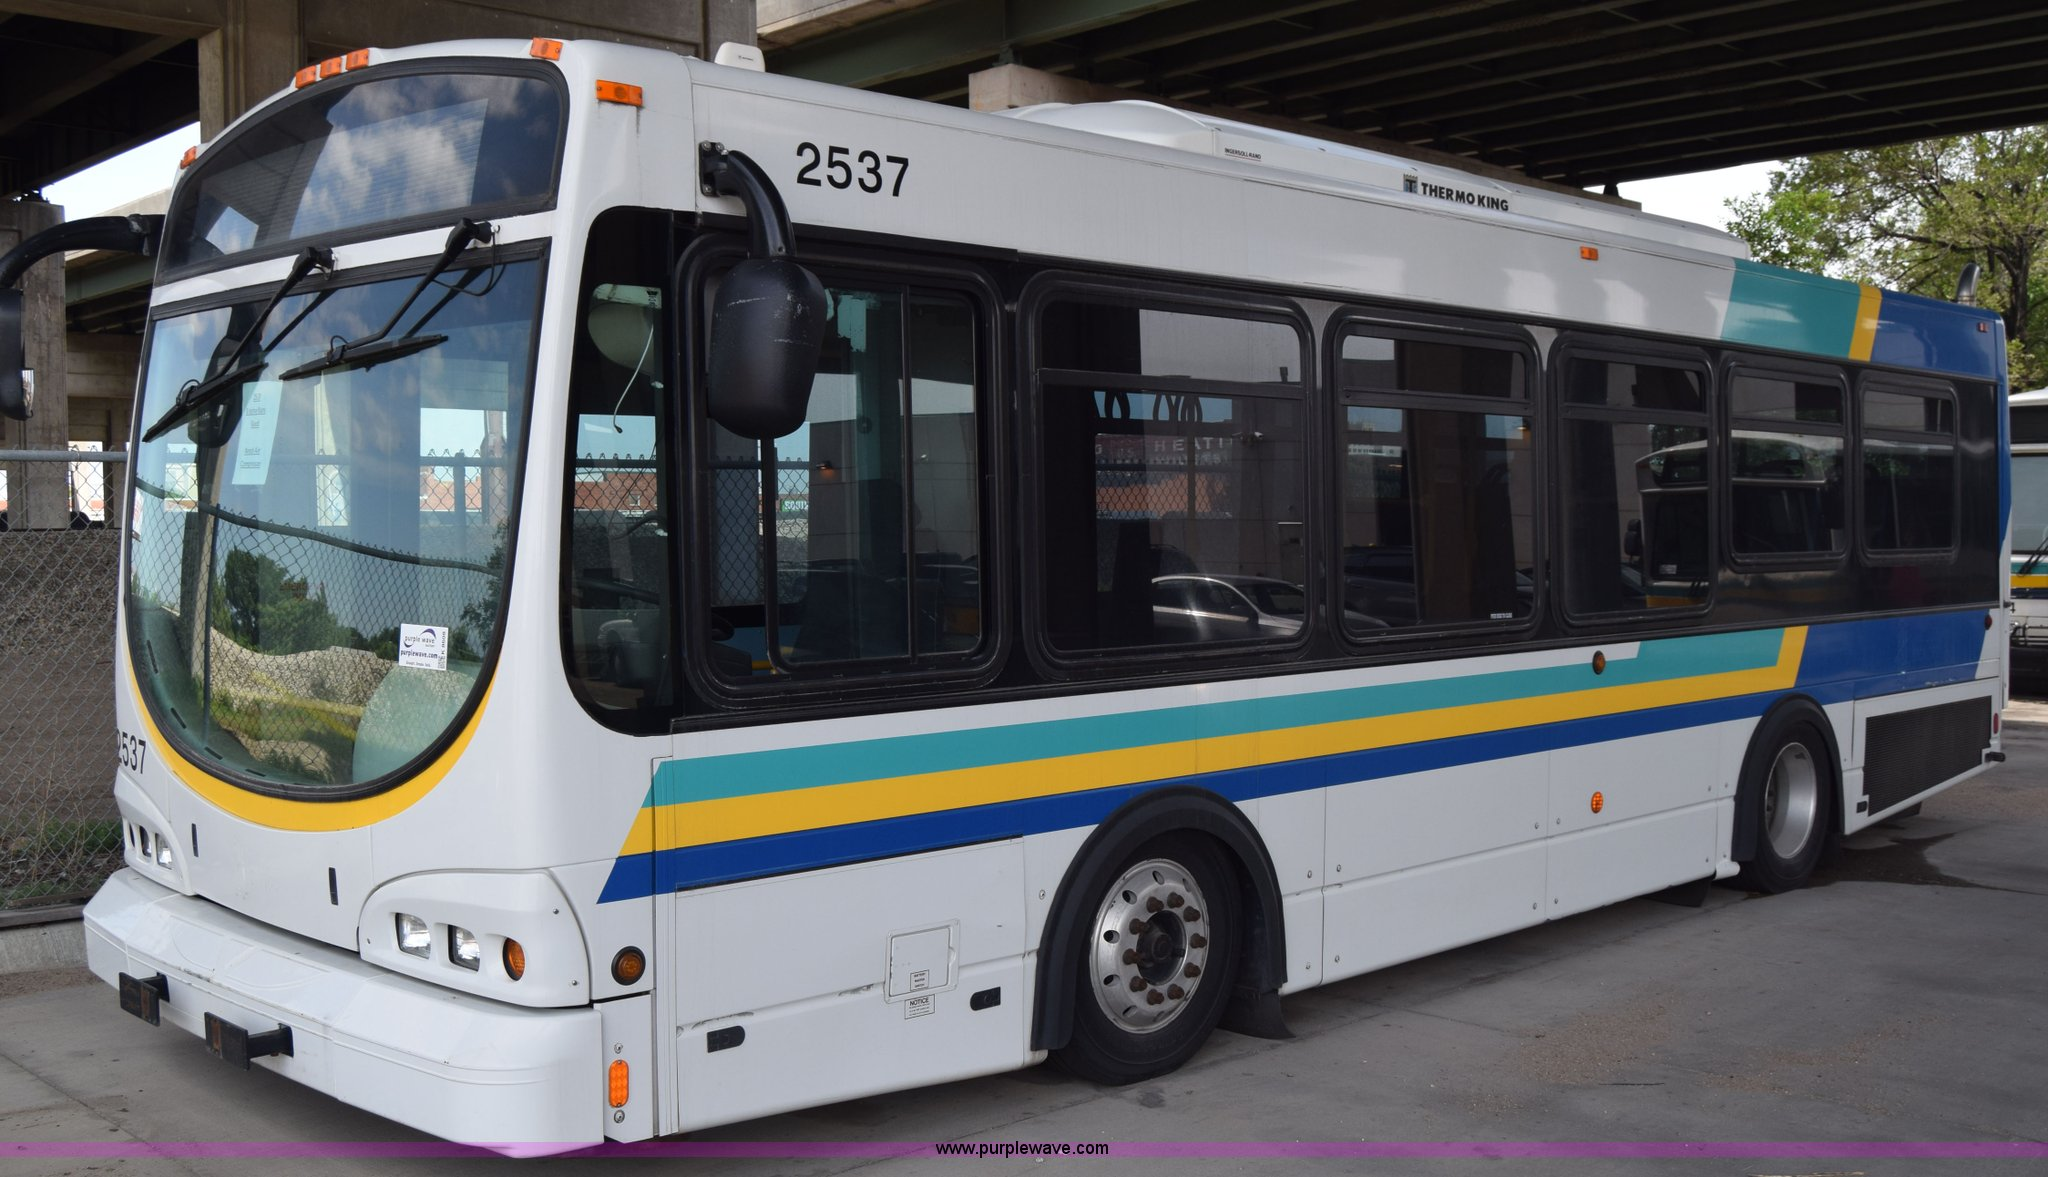 2005 Optima LFB-29 transit bus | Item K8608 | SOLD! June 30